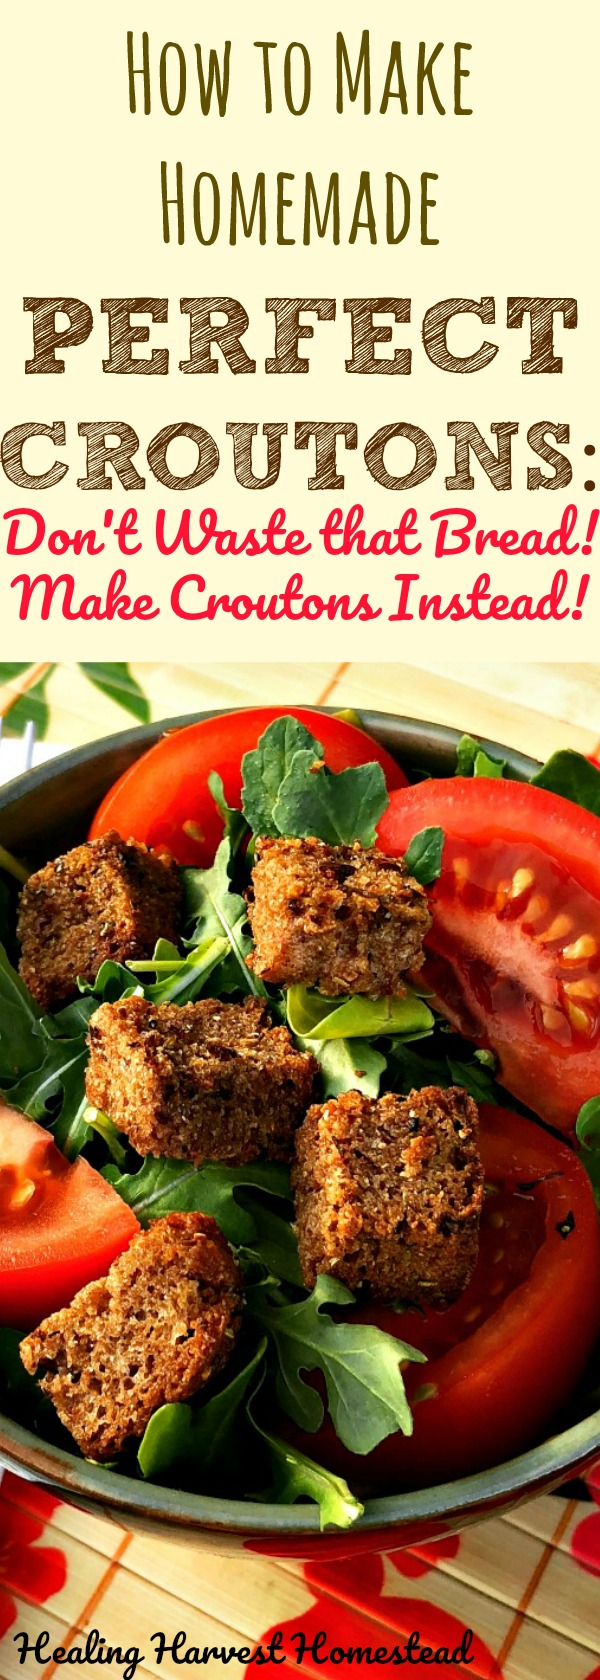 Have extra bread? Or maybe you made a homemade bread mistake? Here's how to save the day and make homemade croutons! You'll be so happy you tried this recipe for homemade croutons!